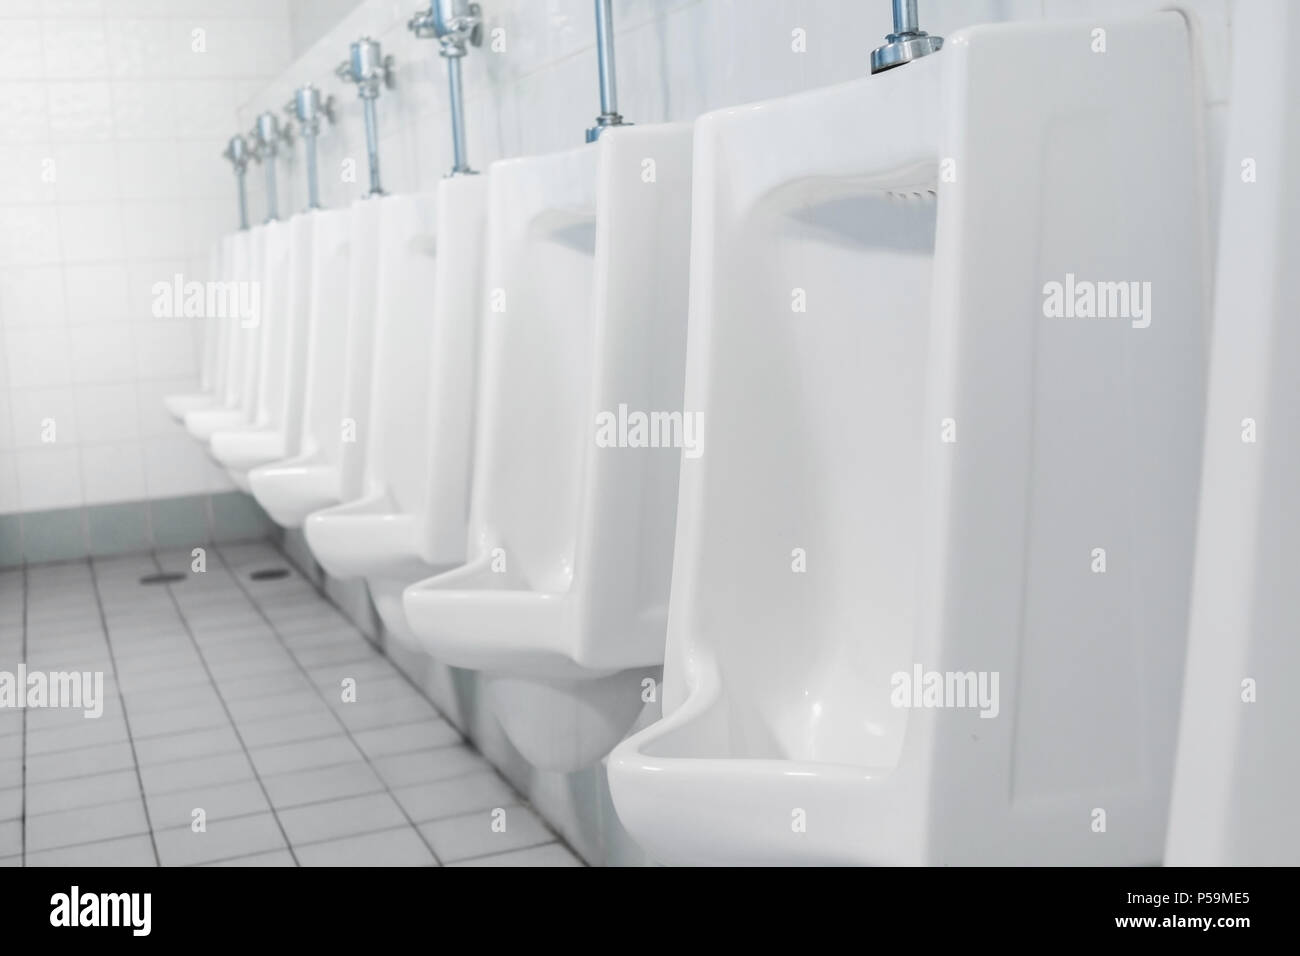 Public Toilet And Bathroom Interior With White Urinals Close Up